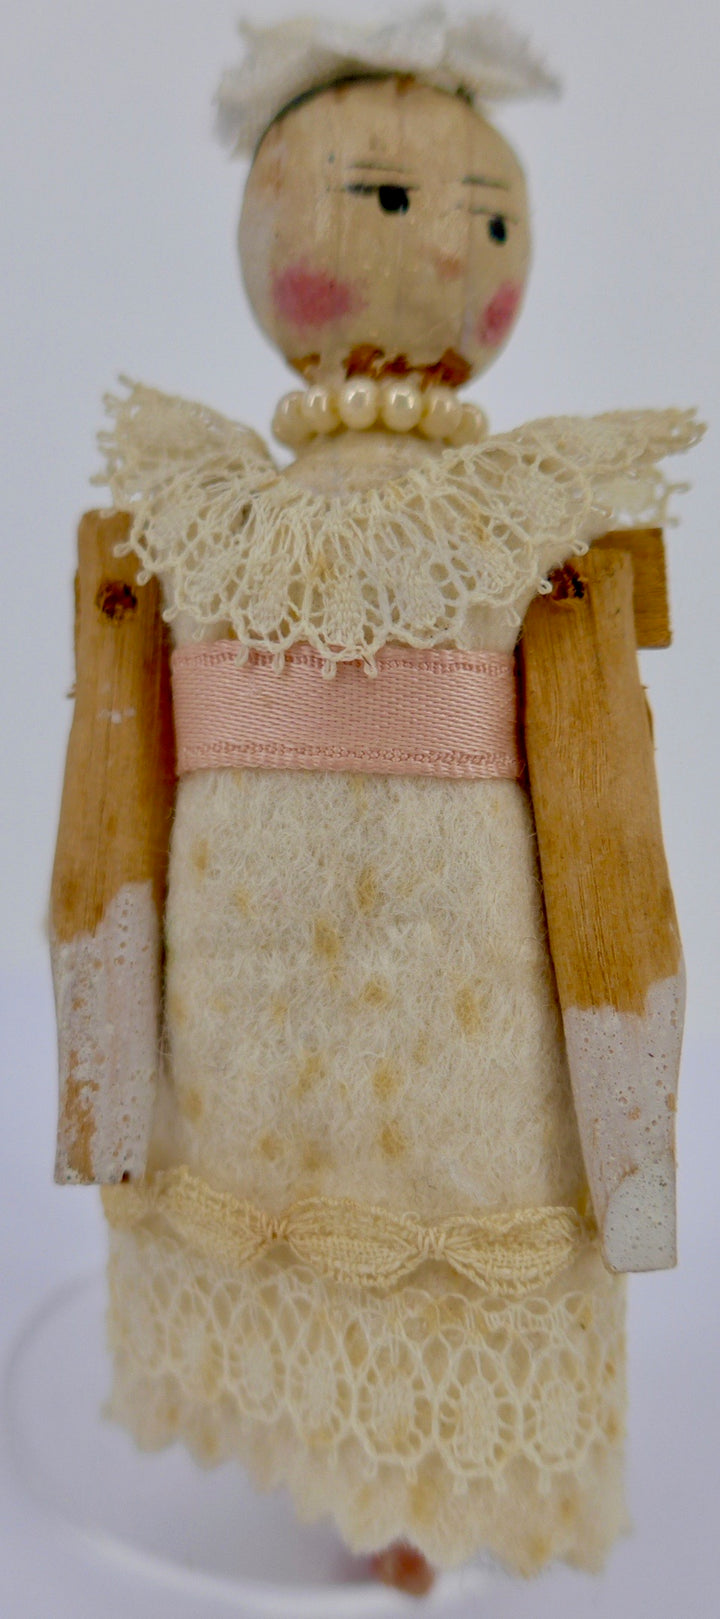 vintage jointed wooden peg doll, cream and pearls